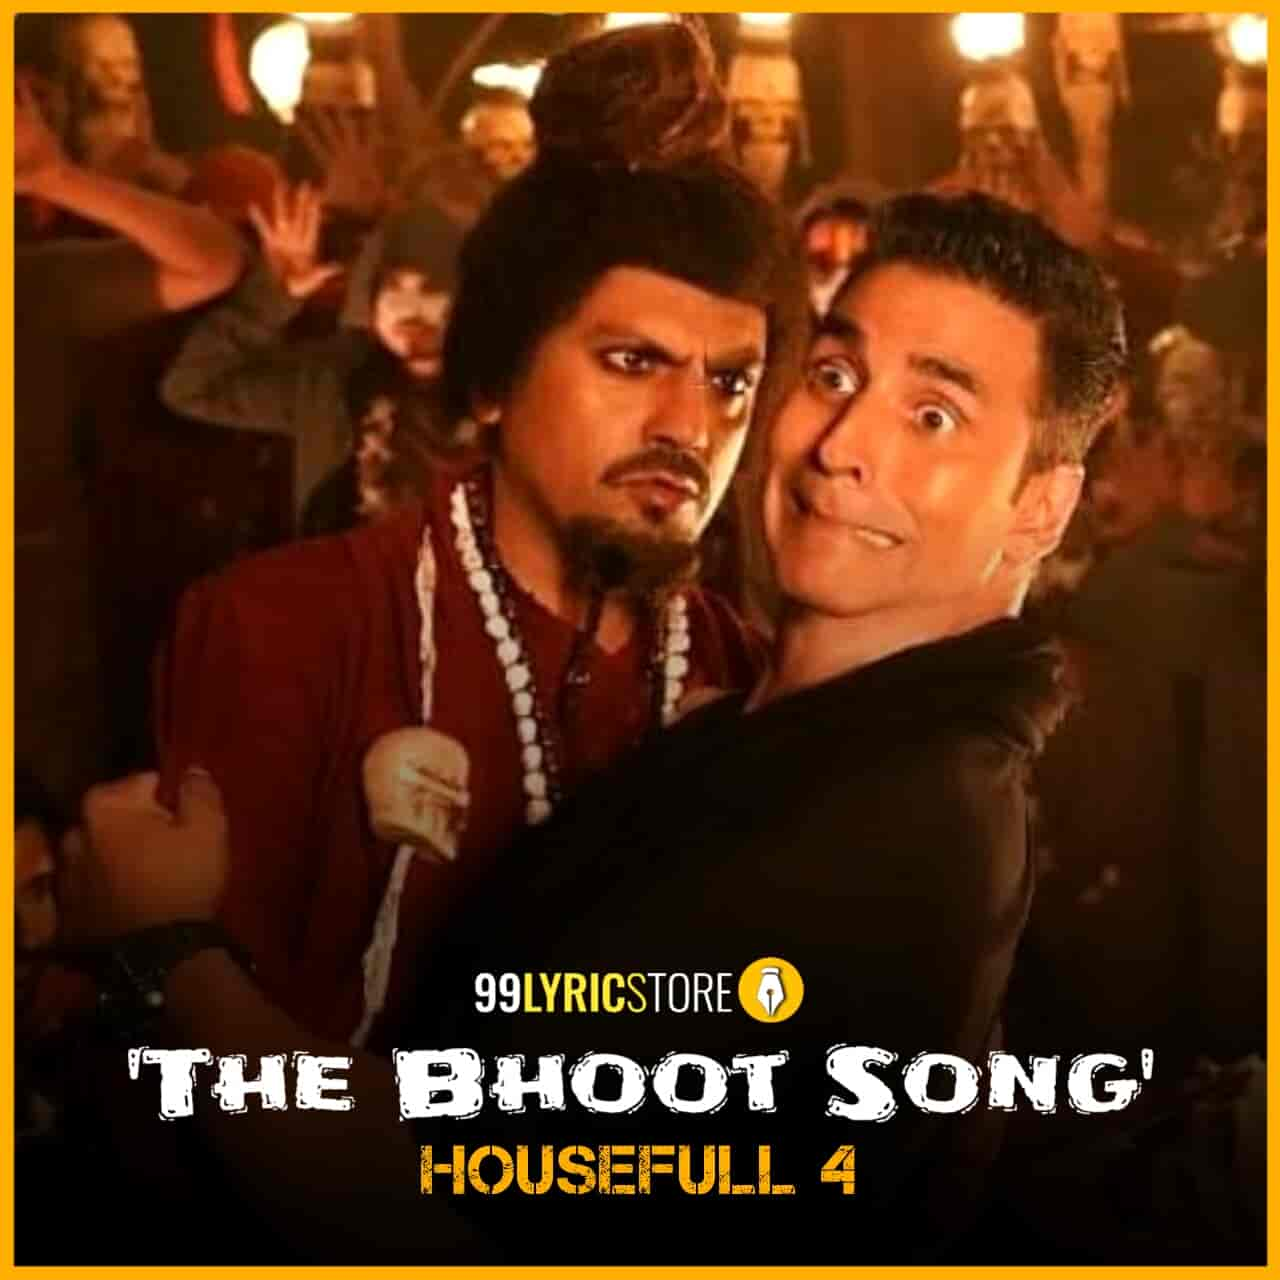 Bhoot Song Image From Movie HouseFull 4